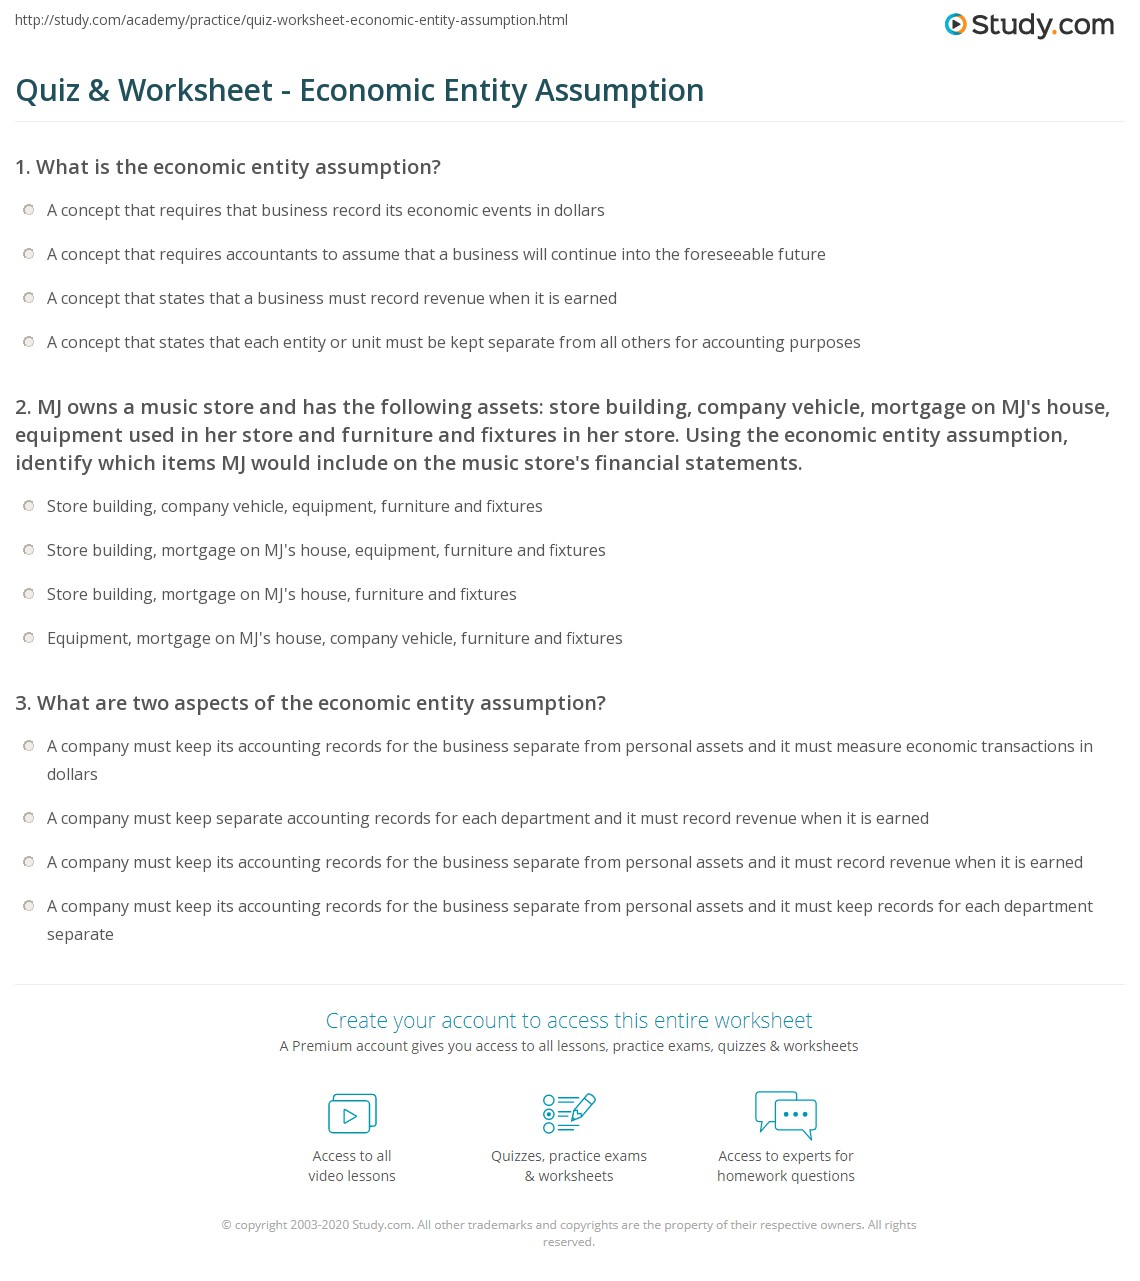 Quiz & Worksheet - Economic Entity Assumption